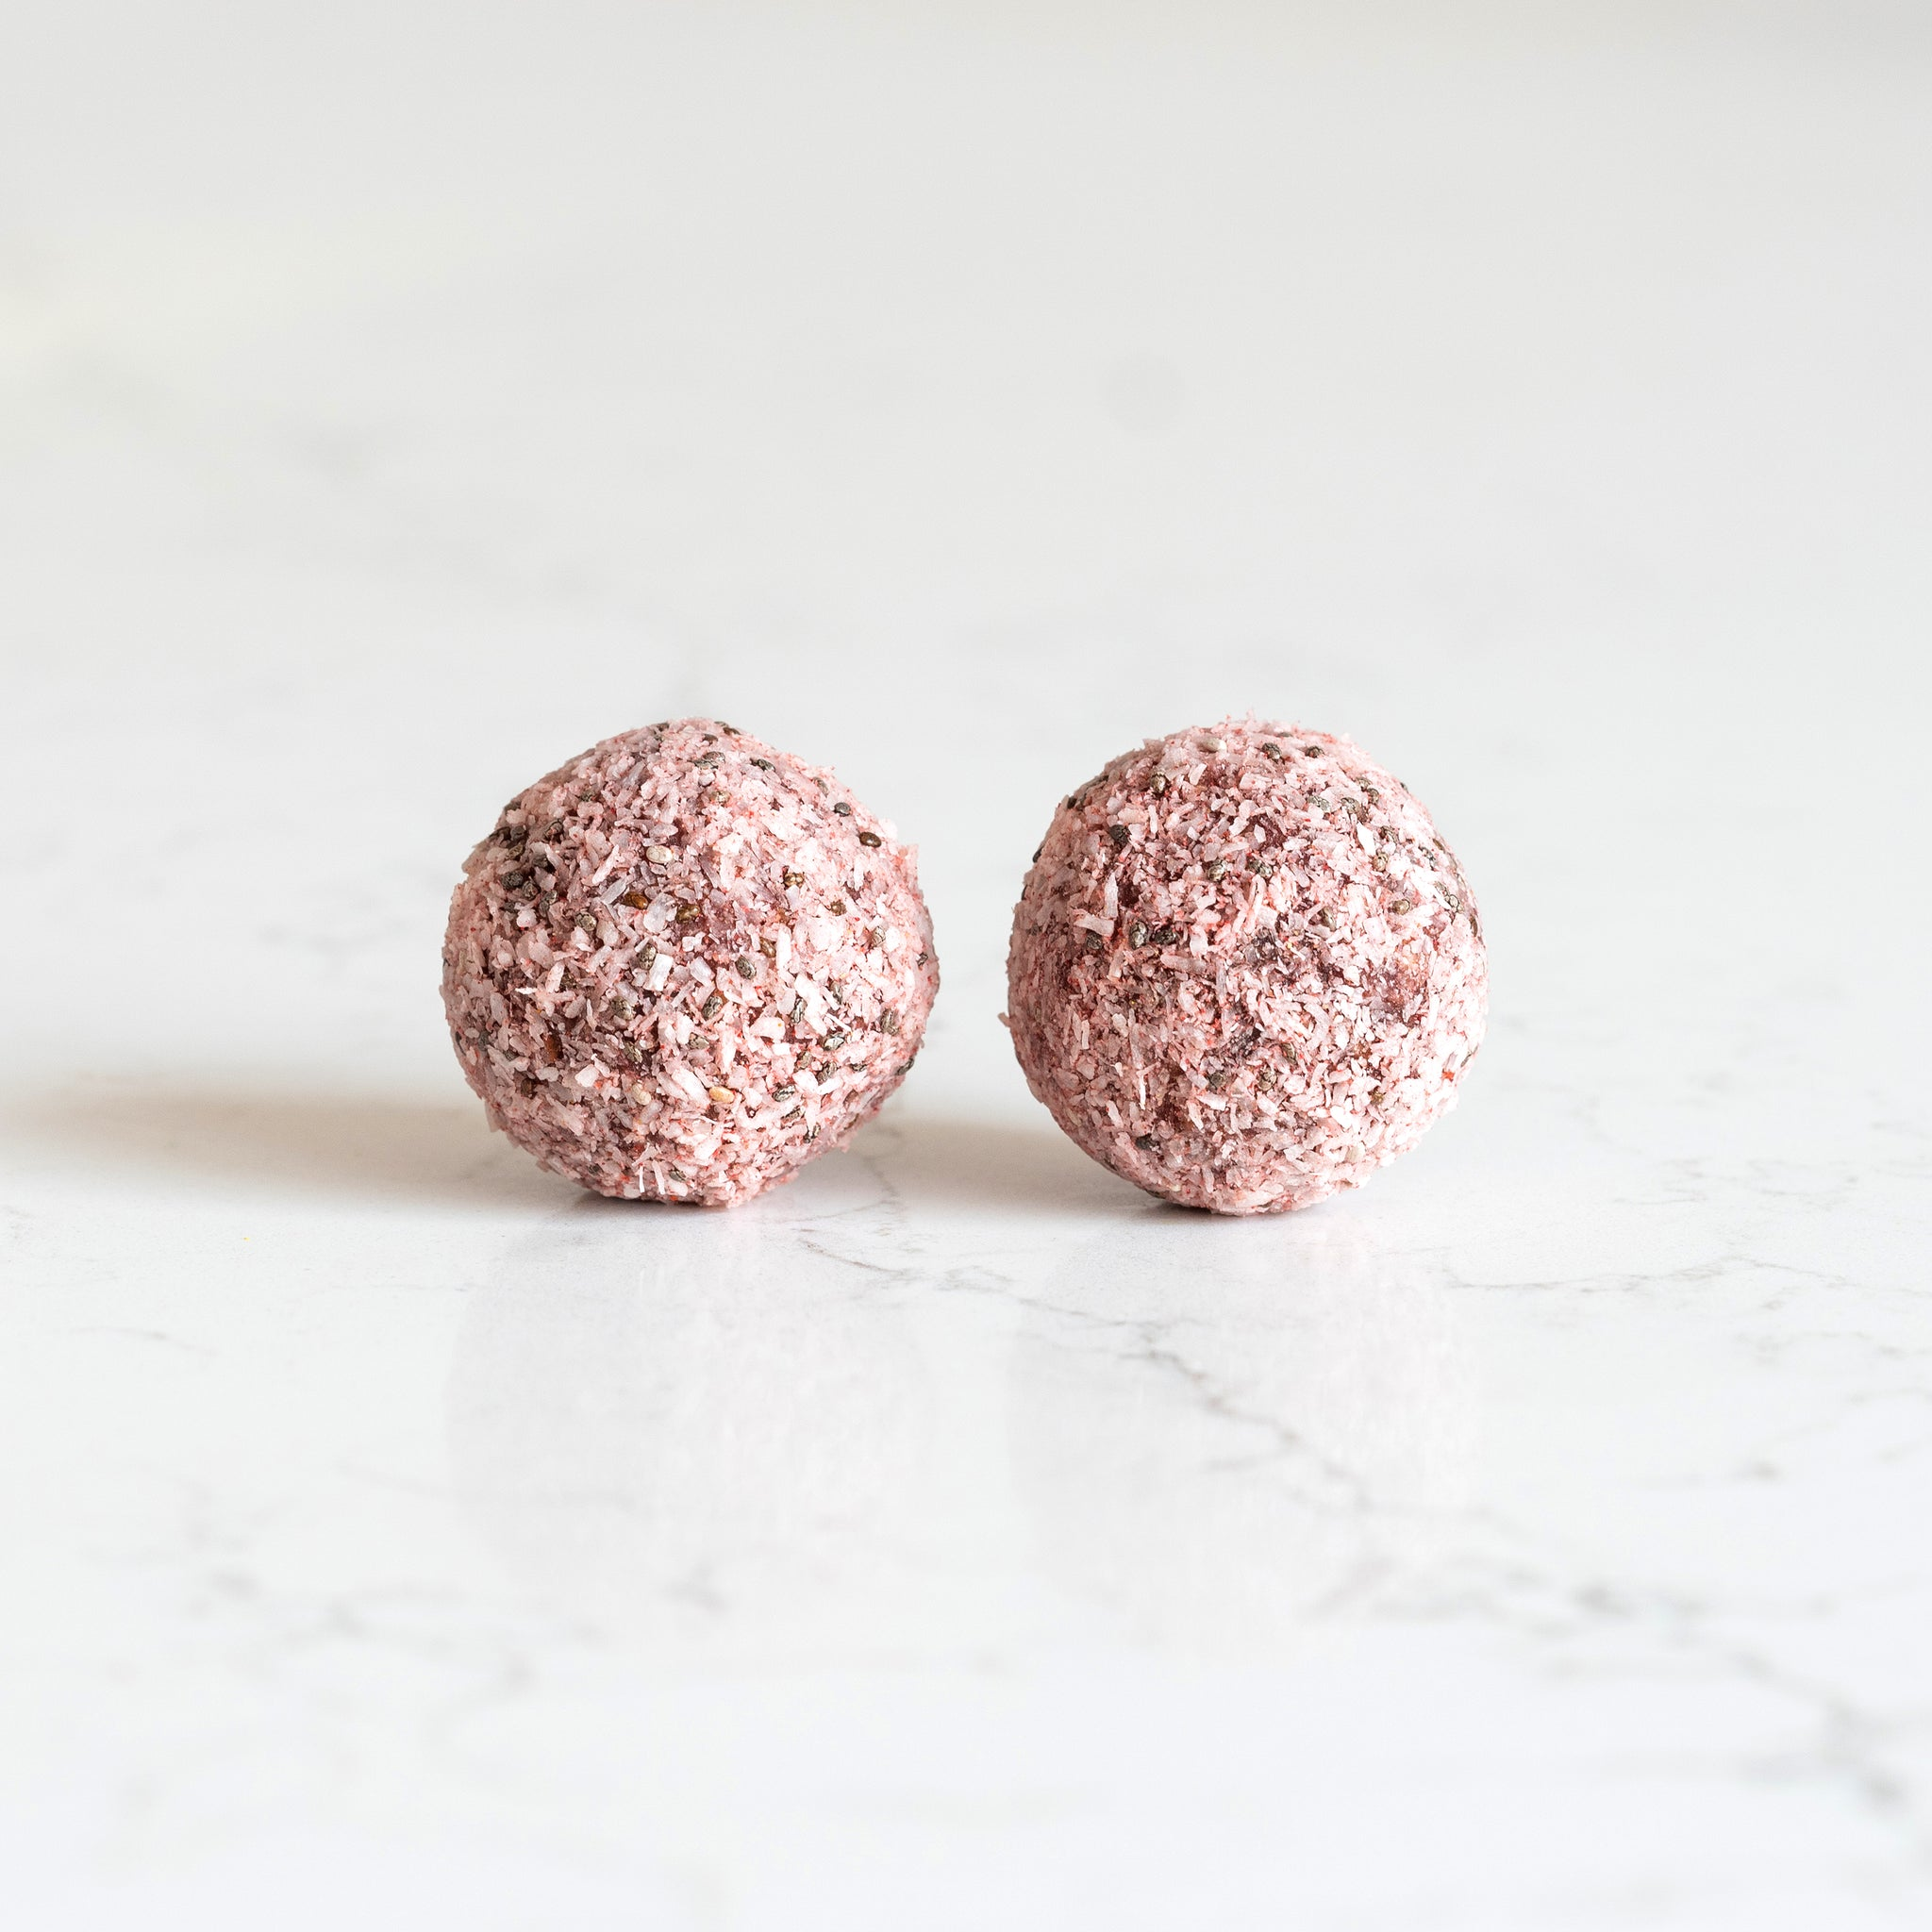 Strawberry Vegan Protein Ball 3 Pack